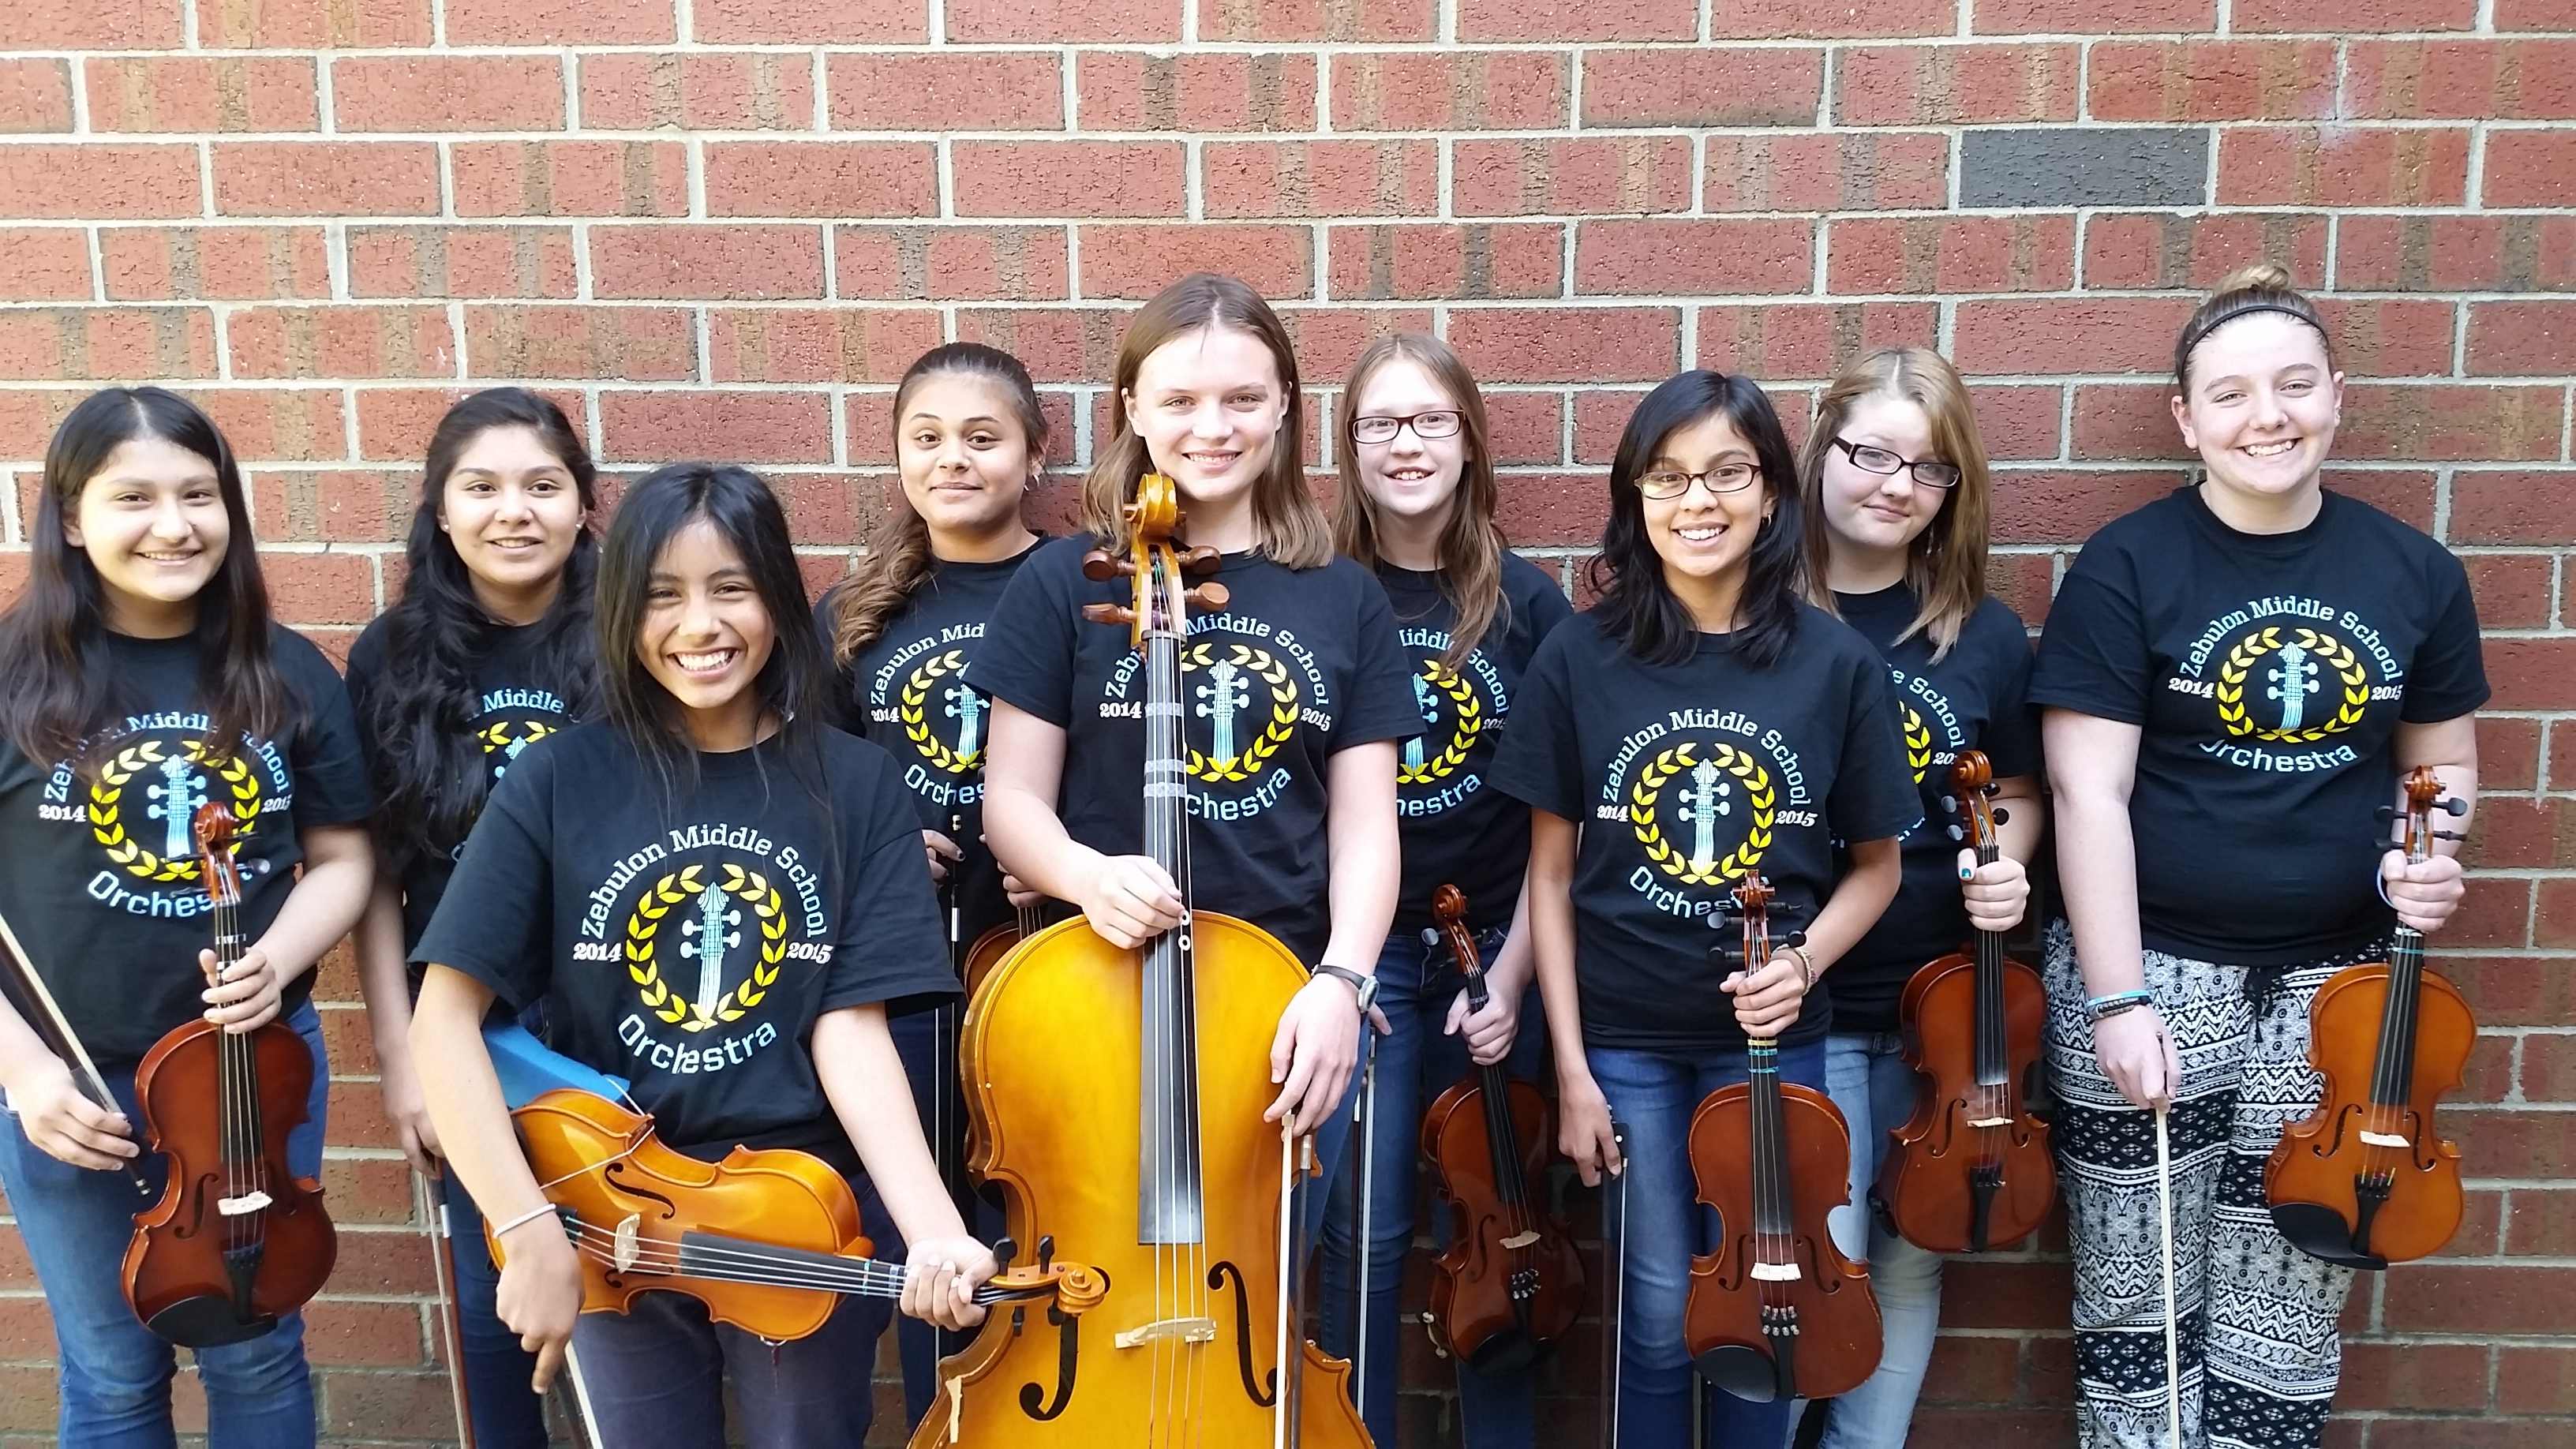 Custom T-Shirts for Zebulon Middle School Orchestra - Shirt Design Ideas